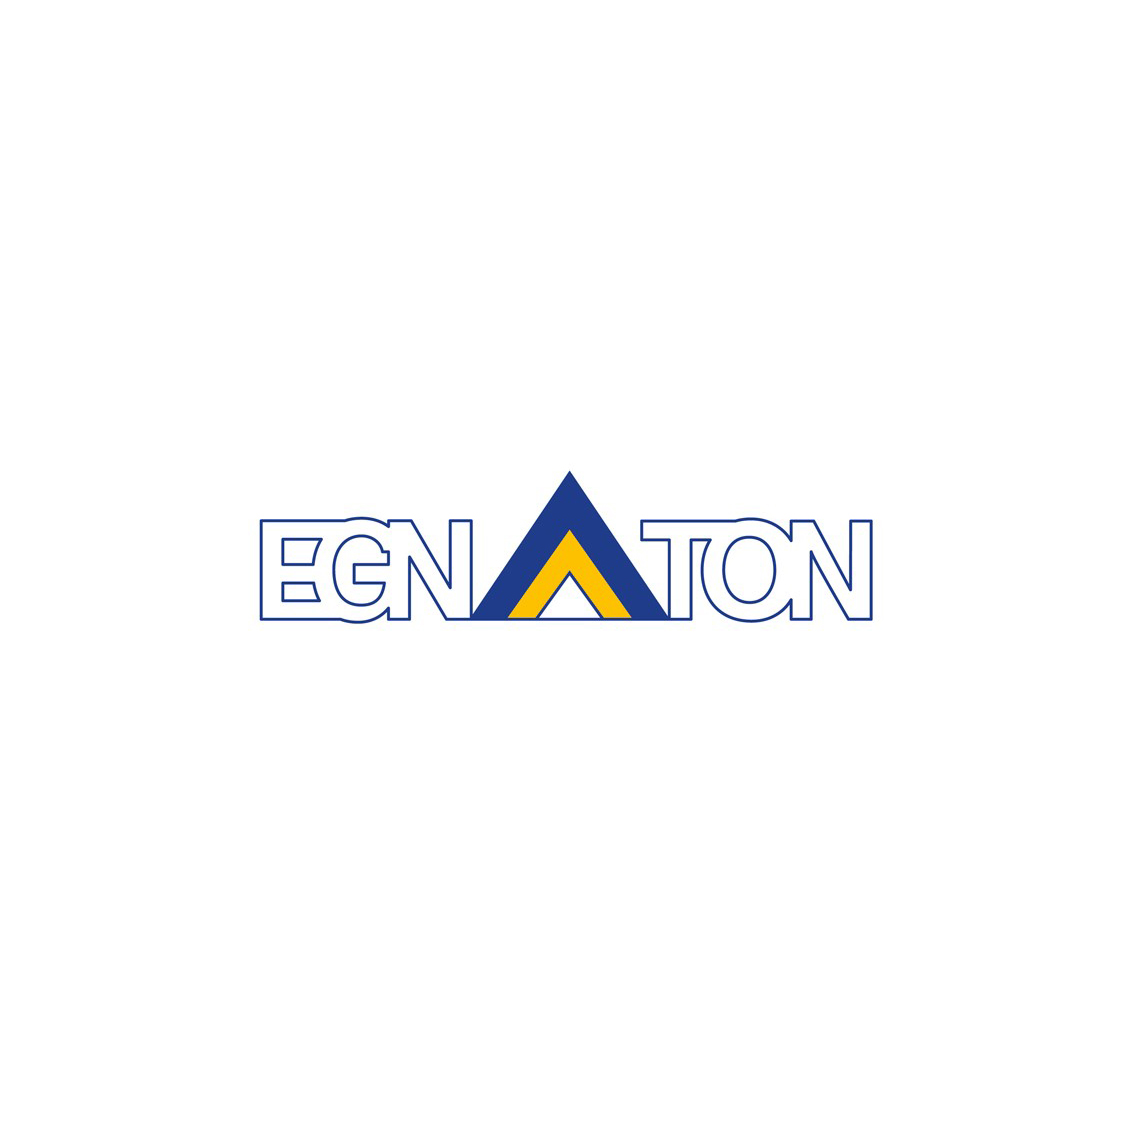 EGNATON 8TH Annual Conference